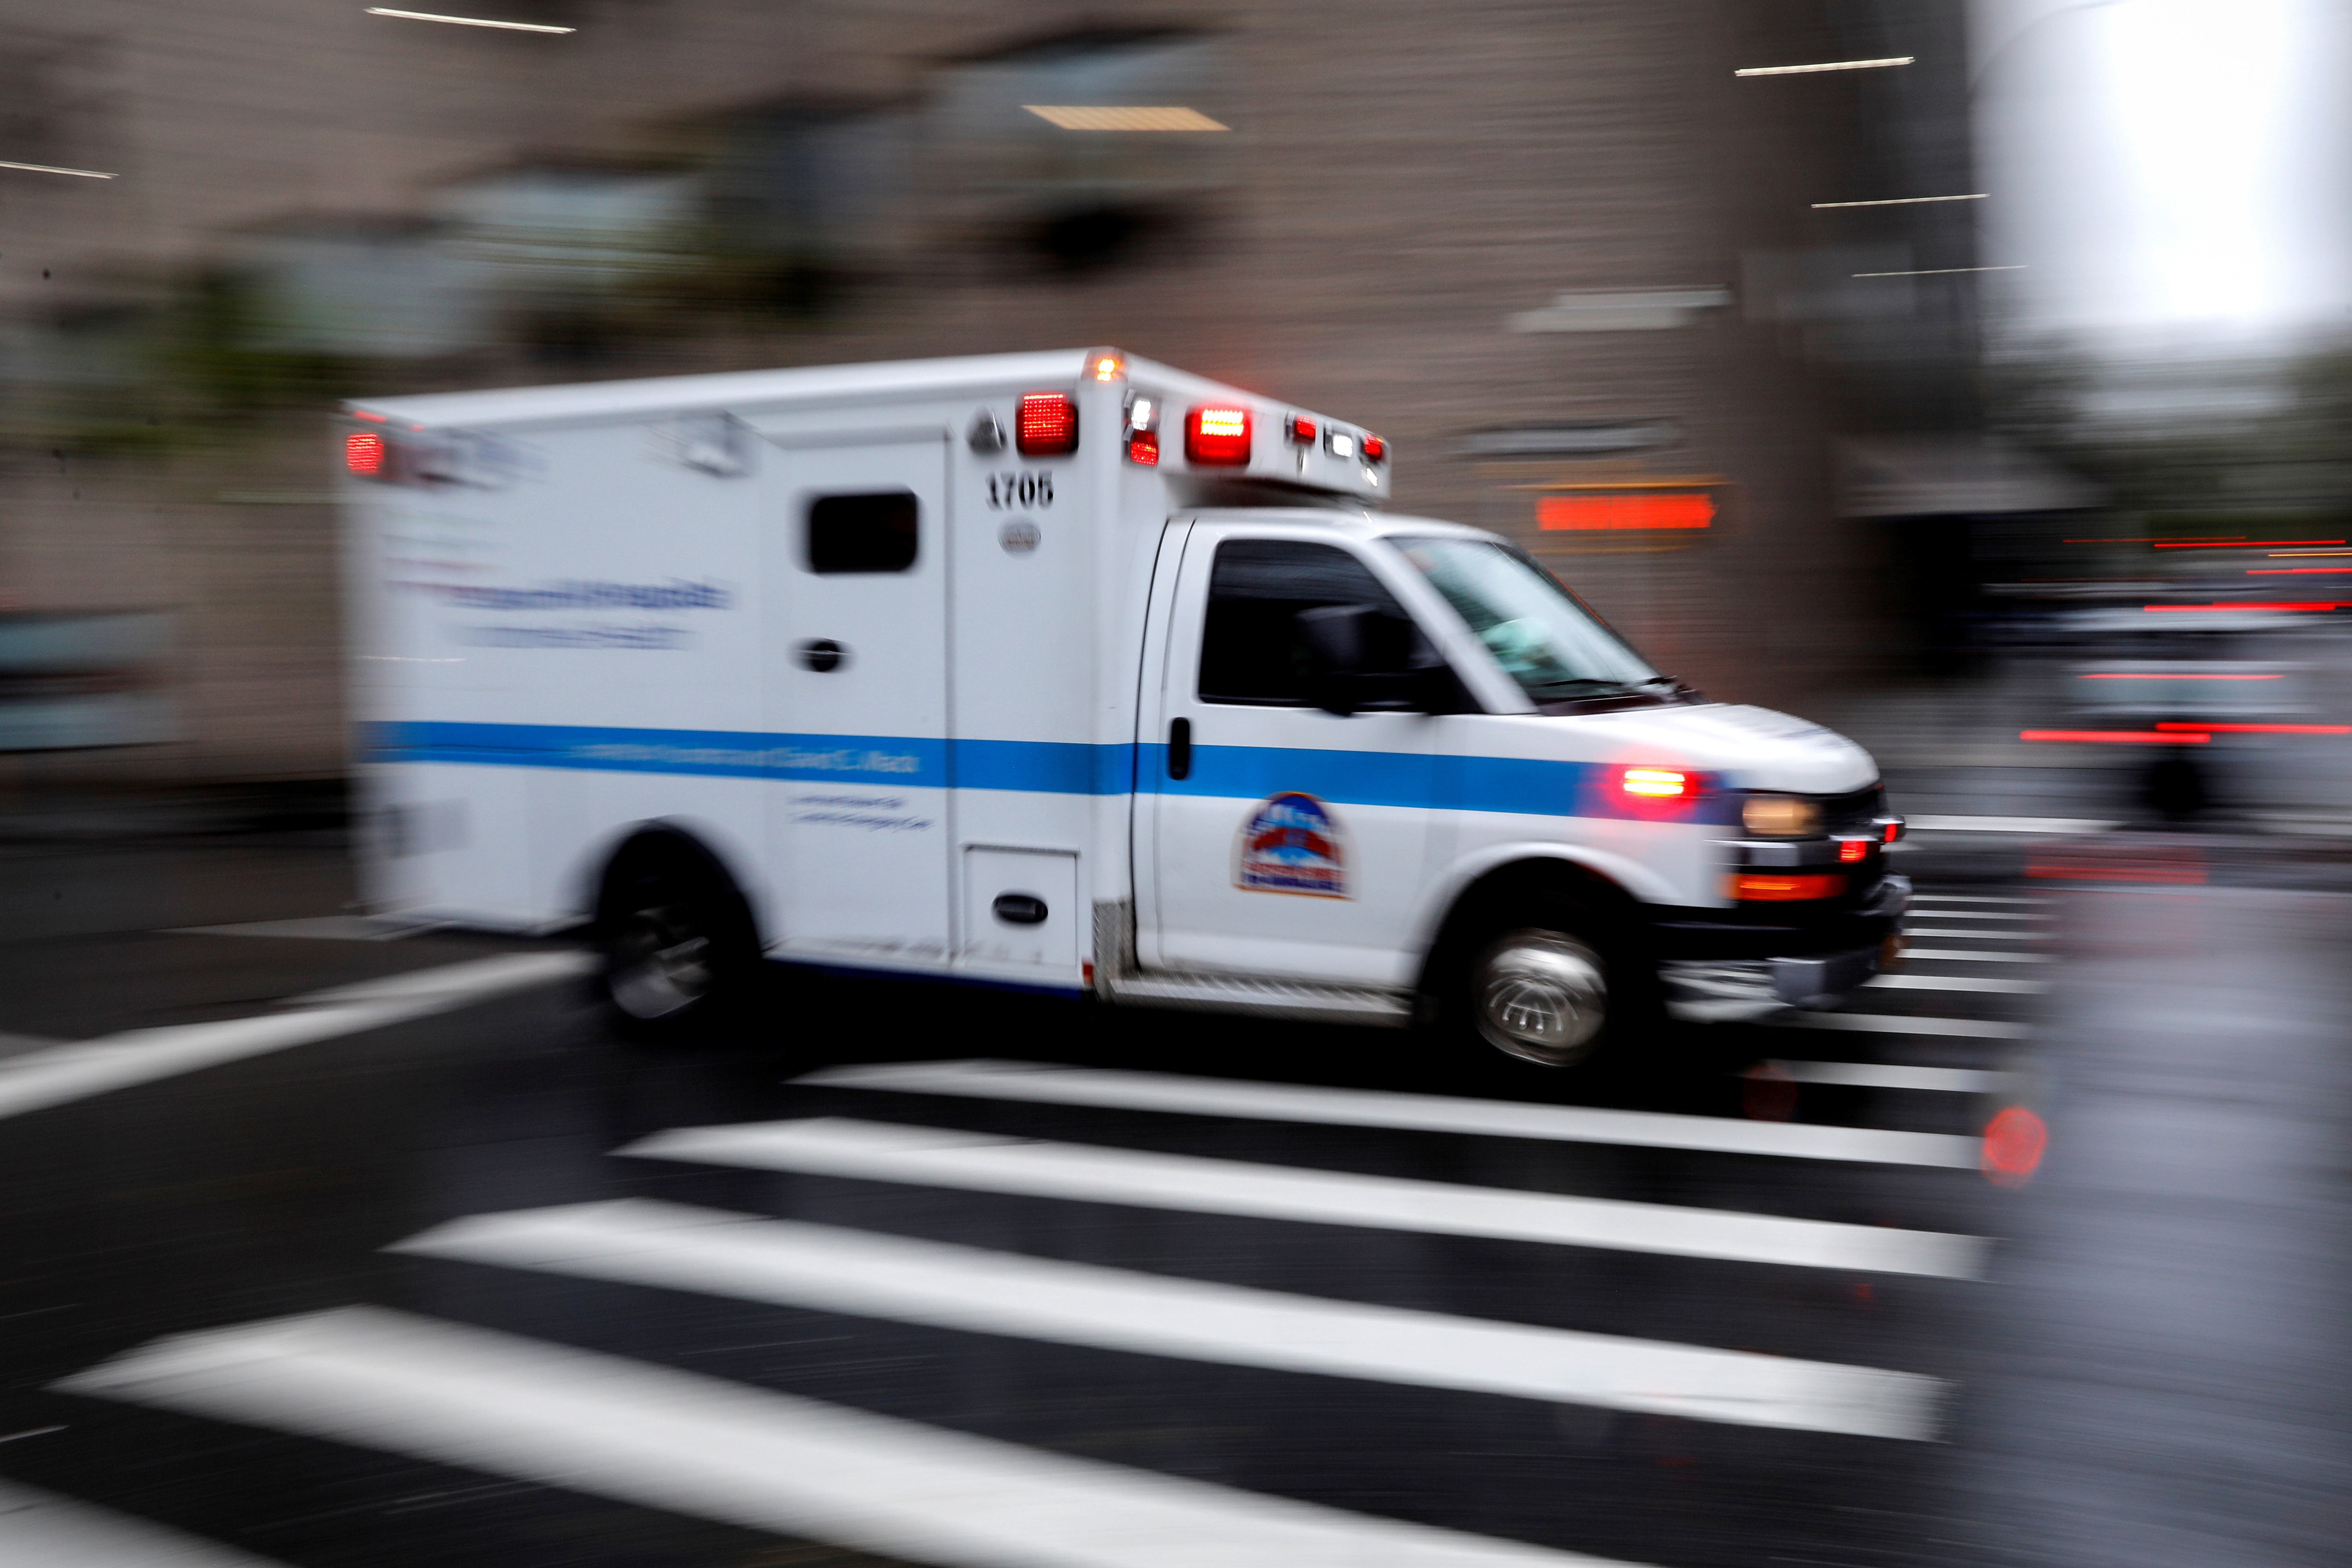 An ambulance arrives at the emergency entrance outside Mount Sinai Hospital in Manhattan during the outbreak of the coronavirus disease (COVID-19) in New York City, New York, U.S., April 13, 2020. REUTERS/Mike Segar/File Photo